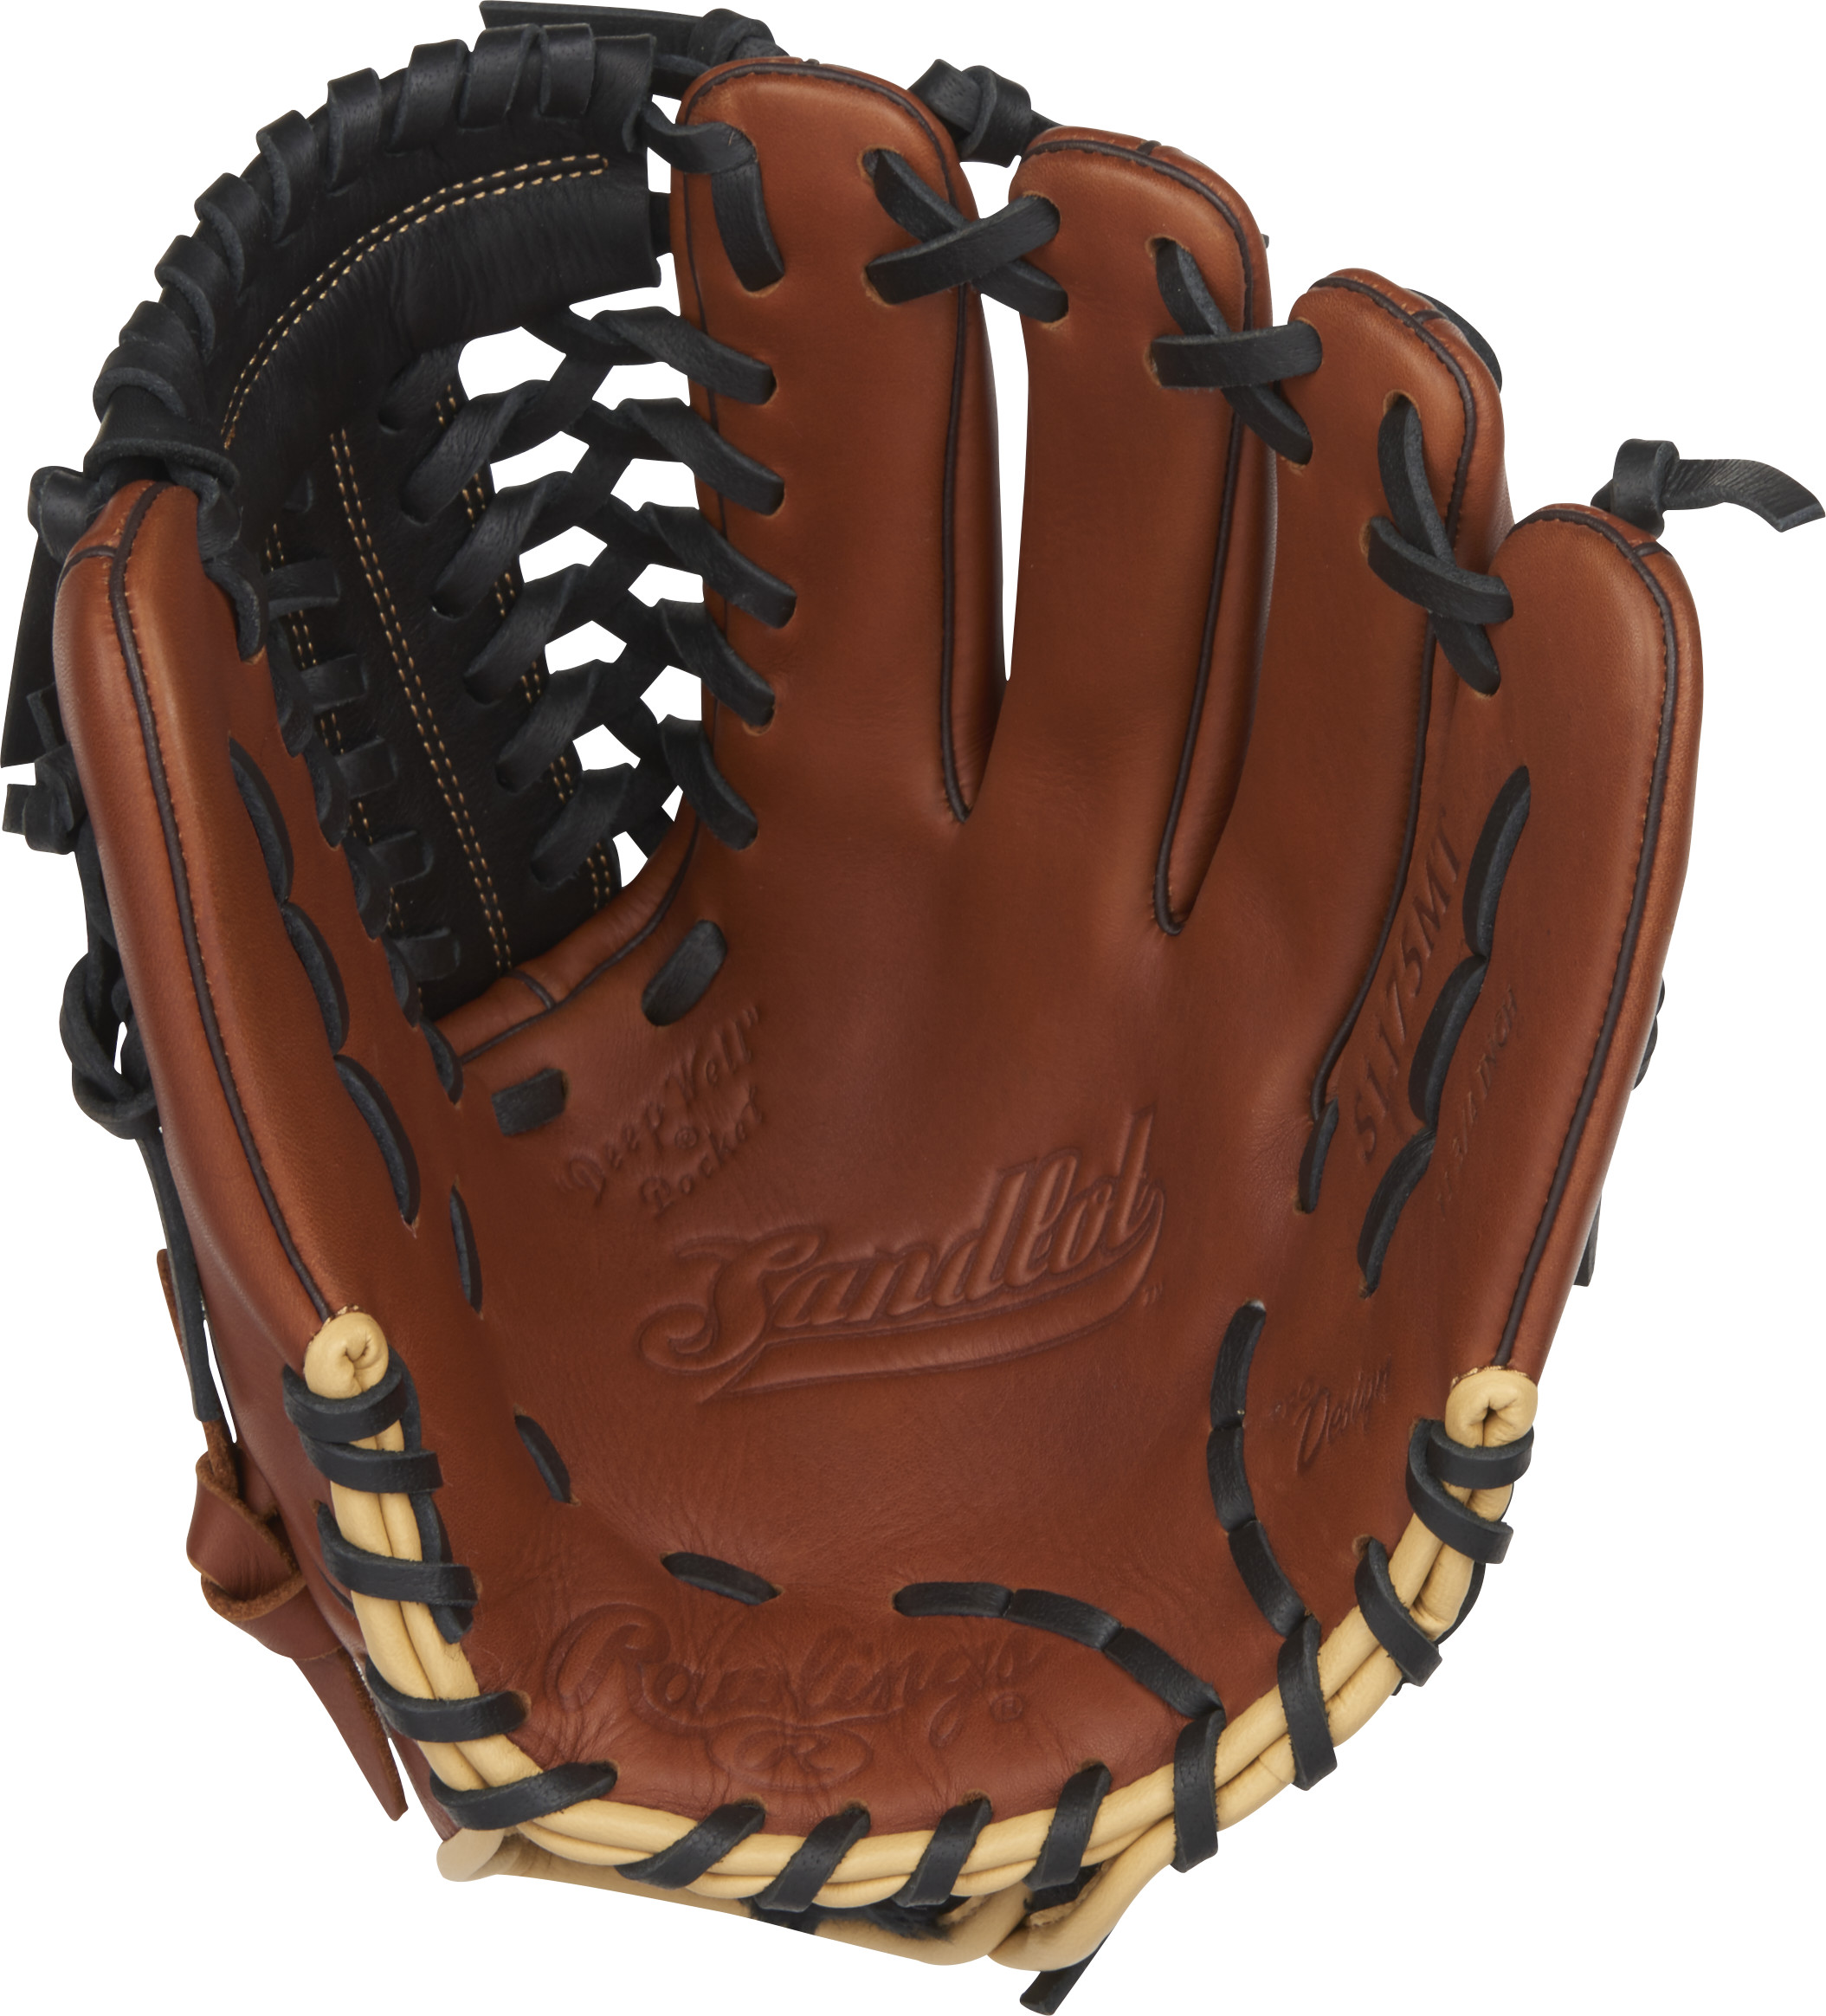 http://www.bestbatdeals.com/images/gloves/rawlings/S1175MT-1.jpg